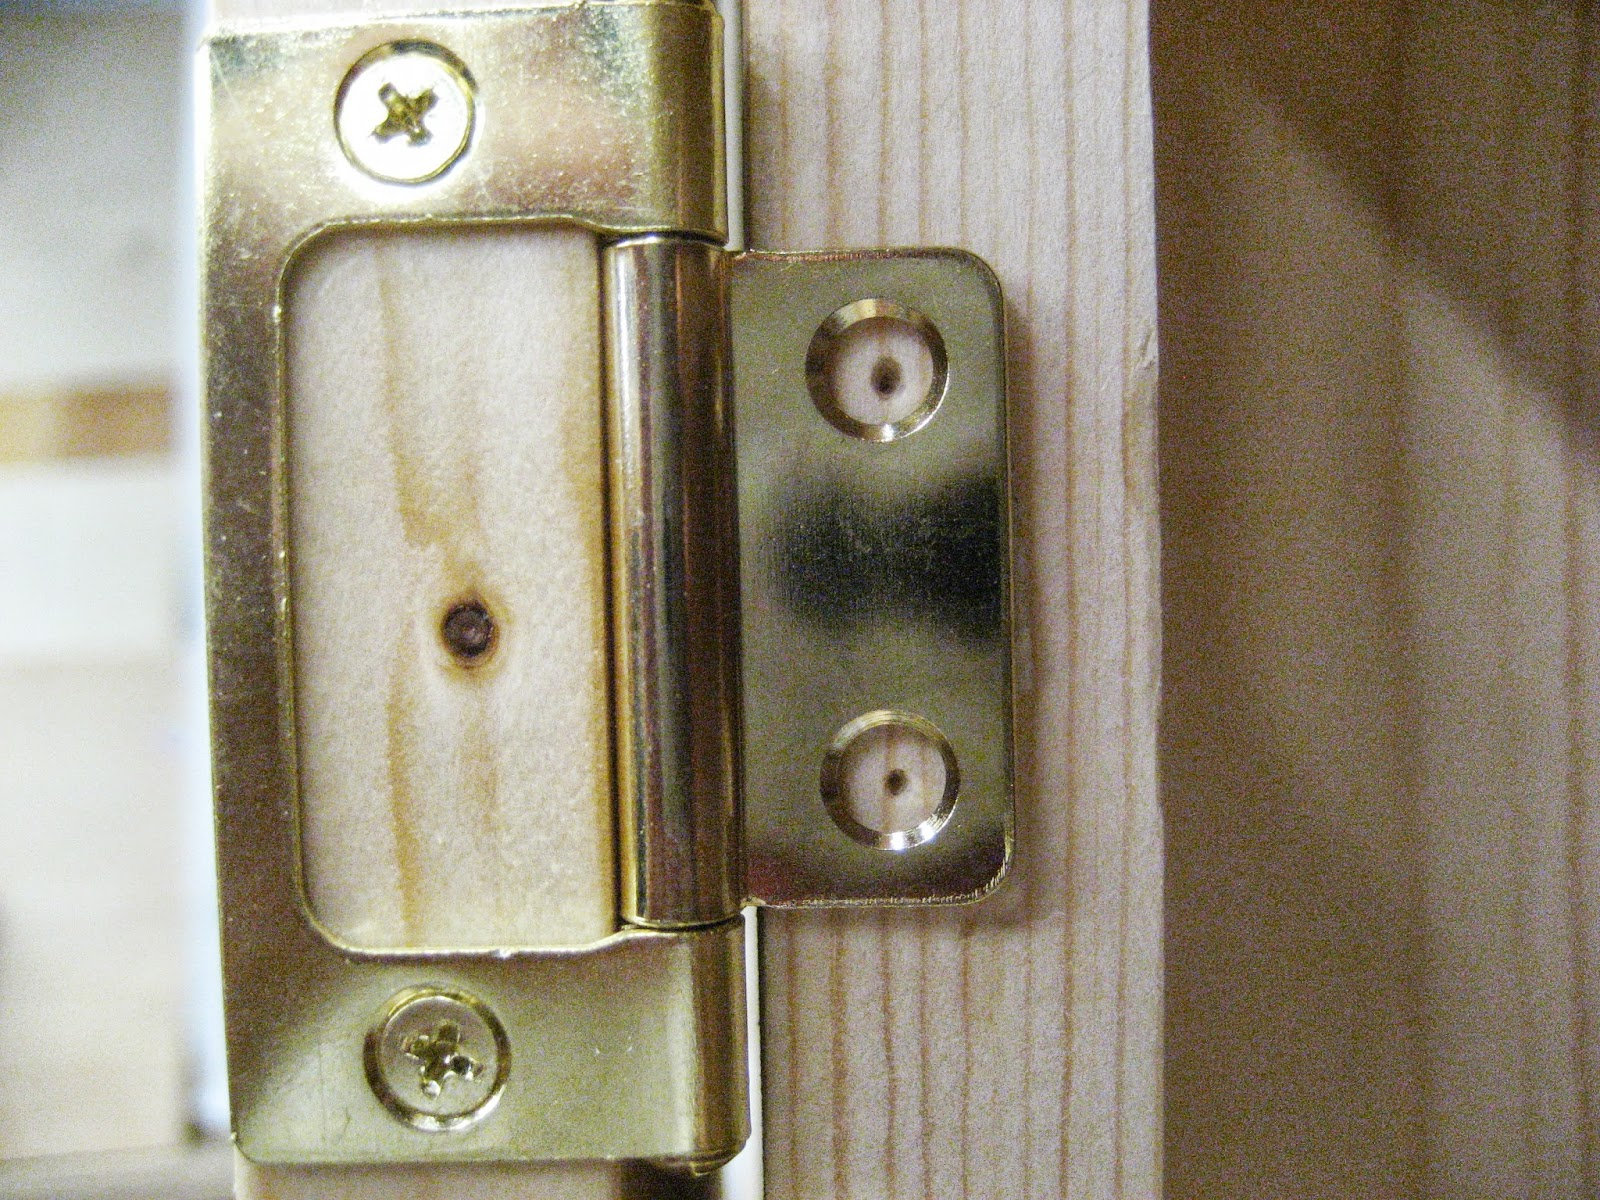 Installing Non Mortise Hinges On Inset Cabinet Doors With Face Frame